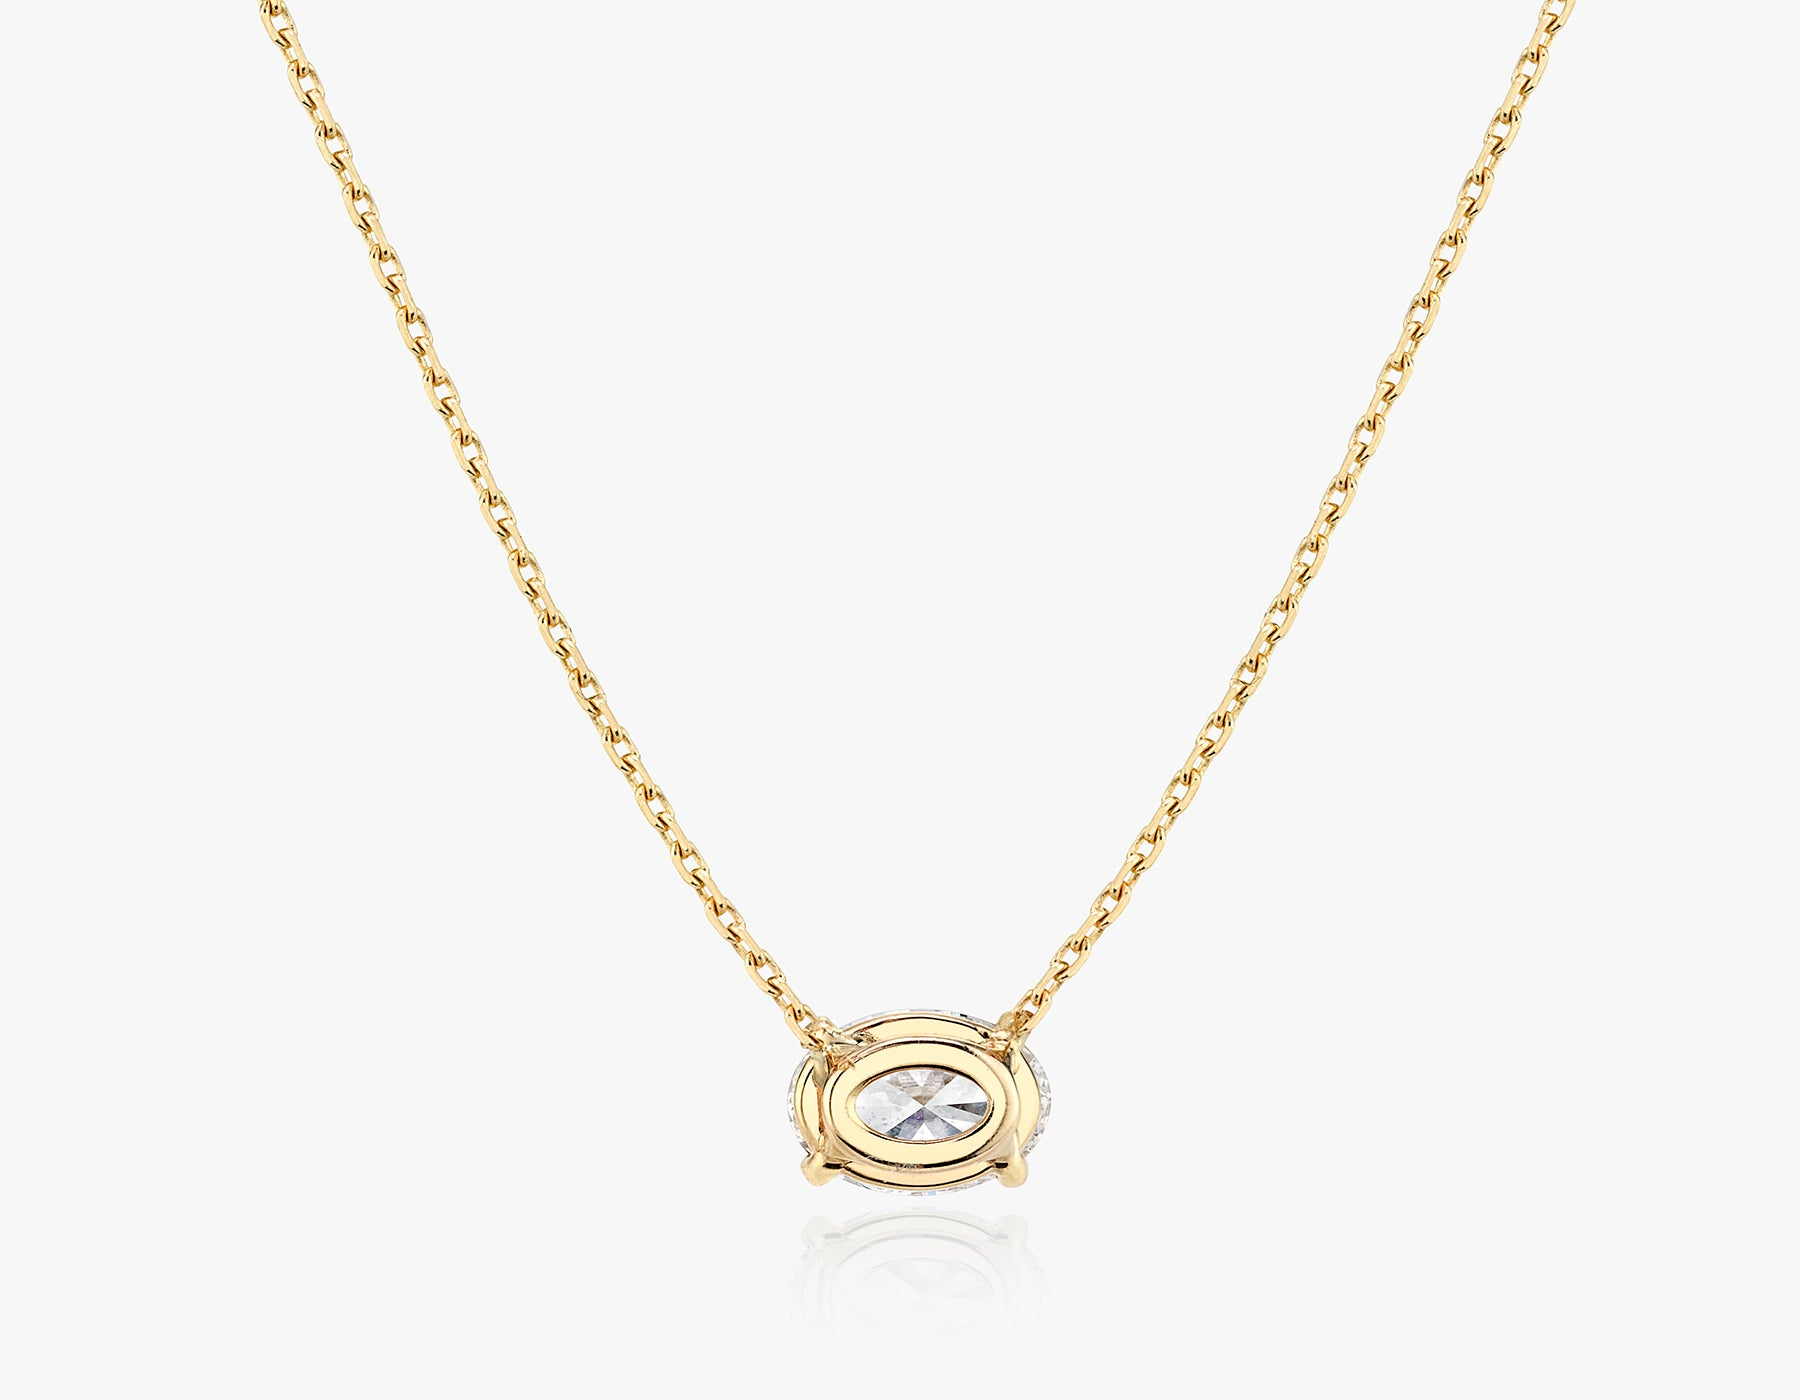 Vrai 1ct Solitaire Oval Created Diamond Necklace back view, 14K Yellow Gold